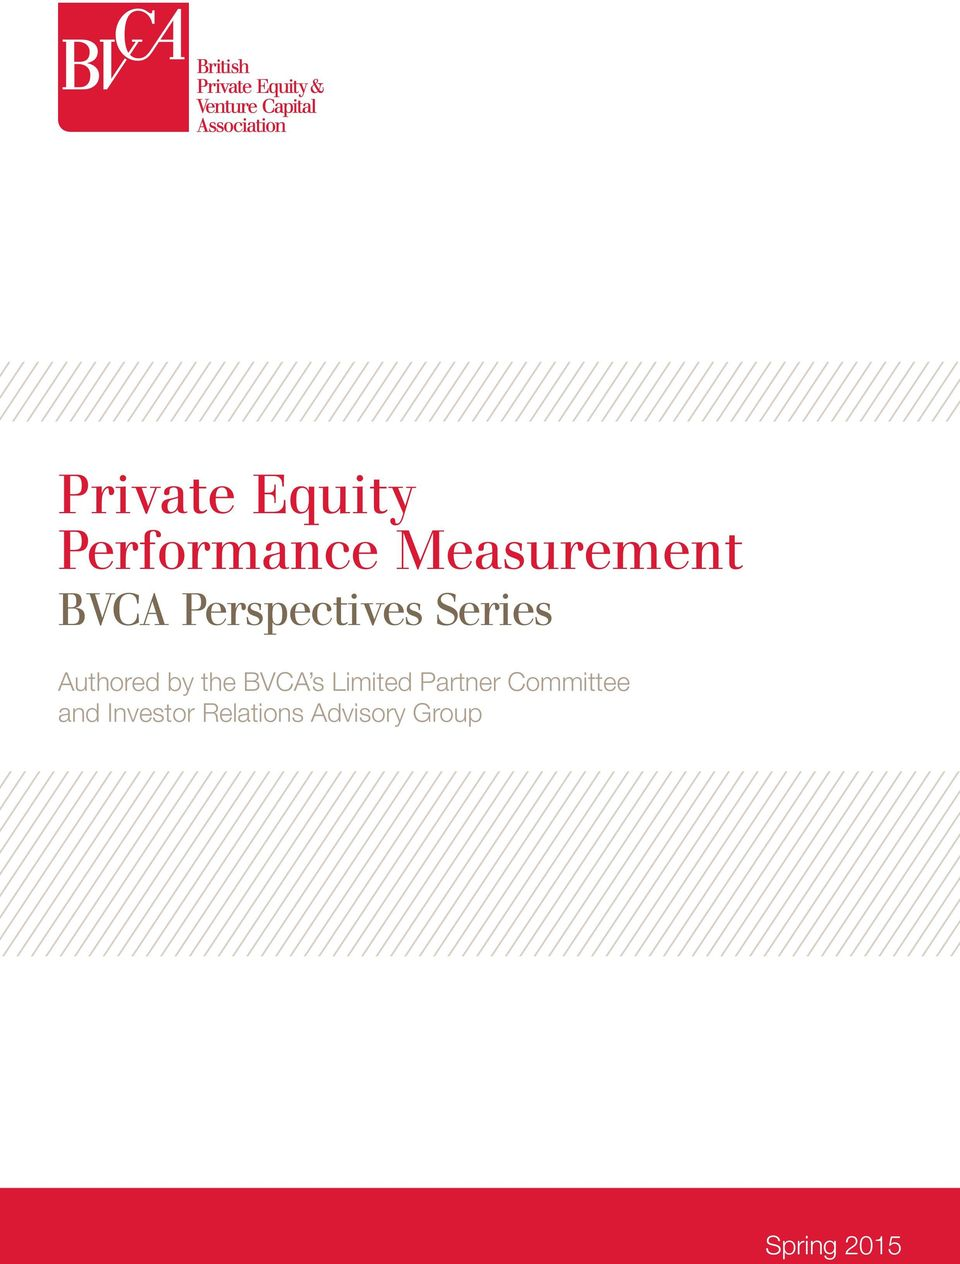 BVCA s Limited Partner Committee and